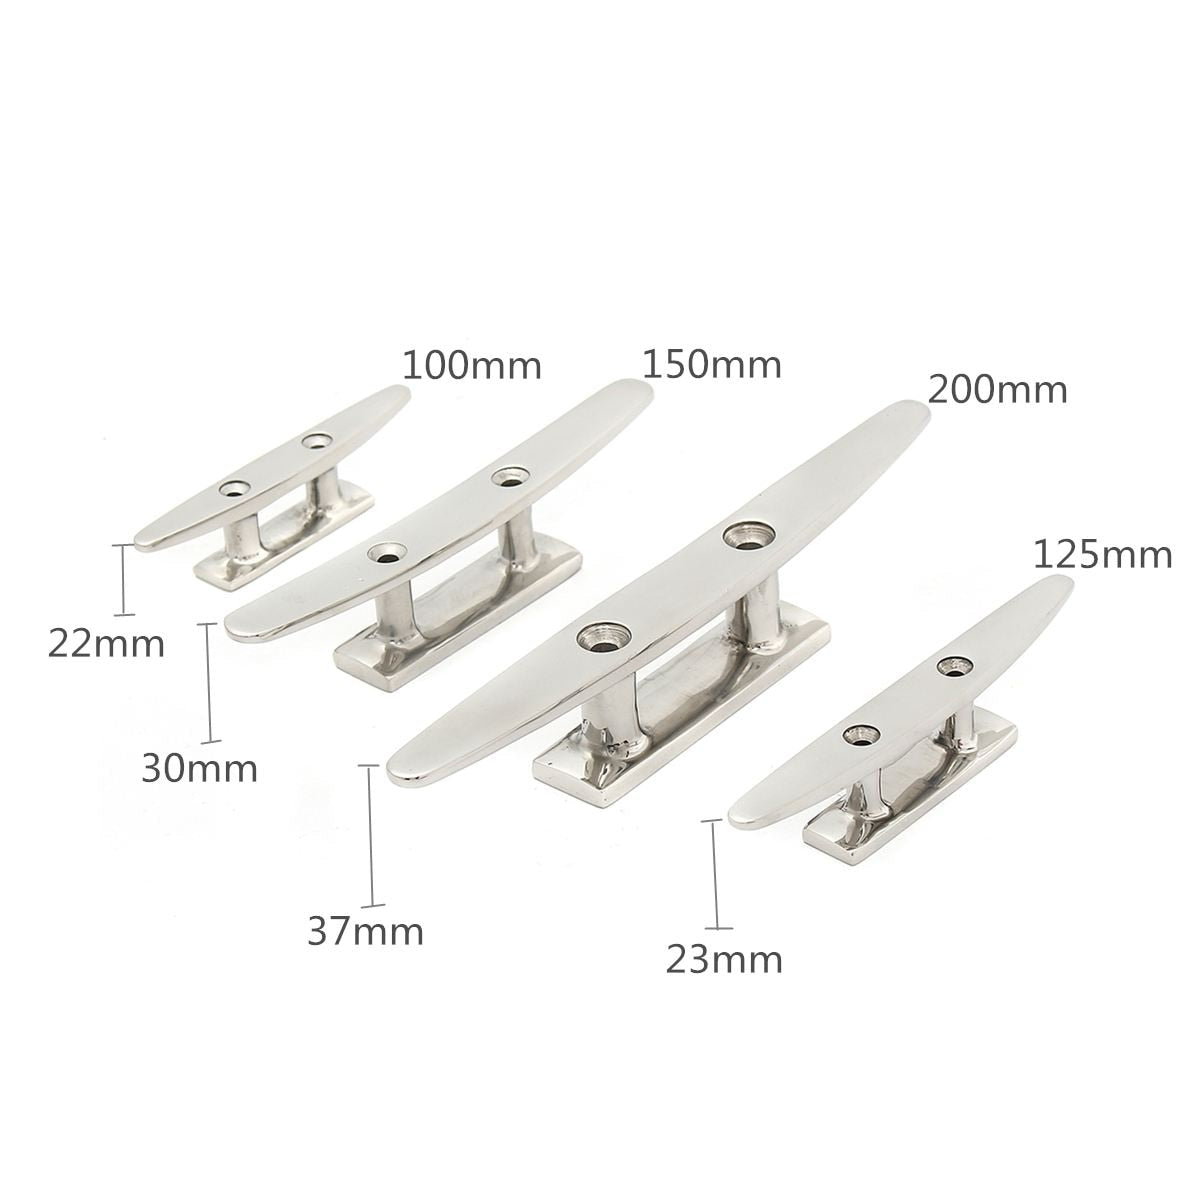 "Low Flat Cleat 316 Stainless Steel 2 Hole Hardware For Marine Boat Deck Rope Tie 4"" 5"" 6"" 8"" for All Chandlery Applications"